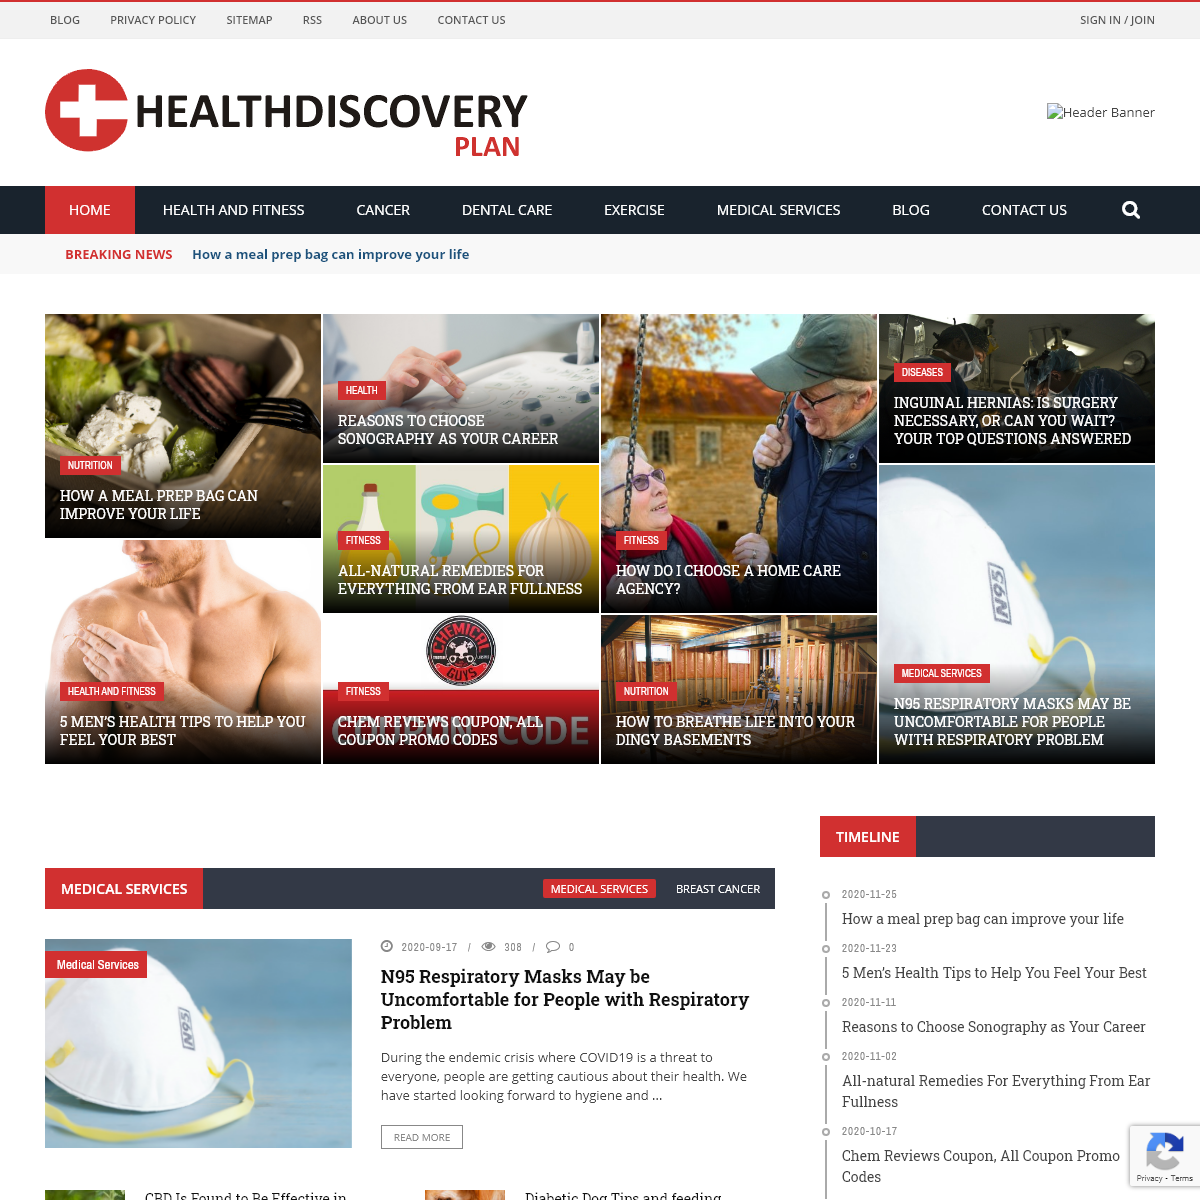 Home - Health Discovery Plan